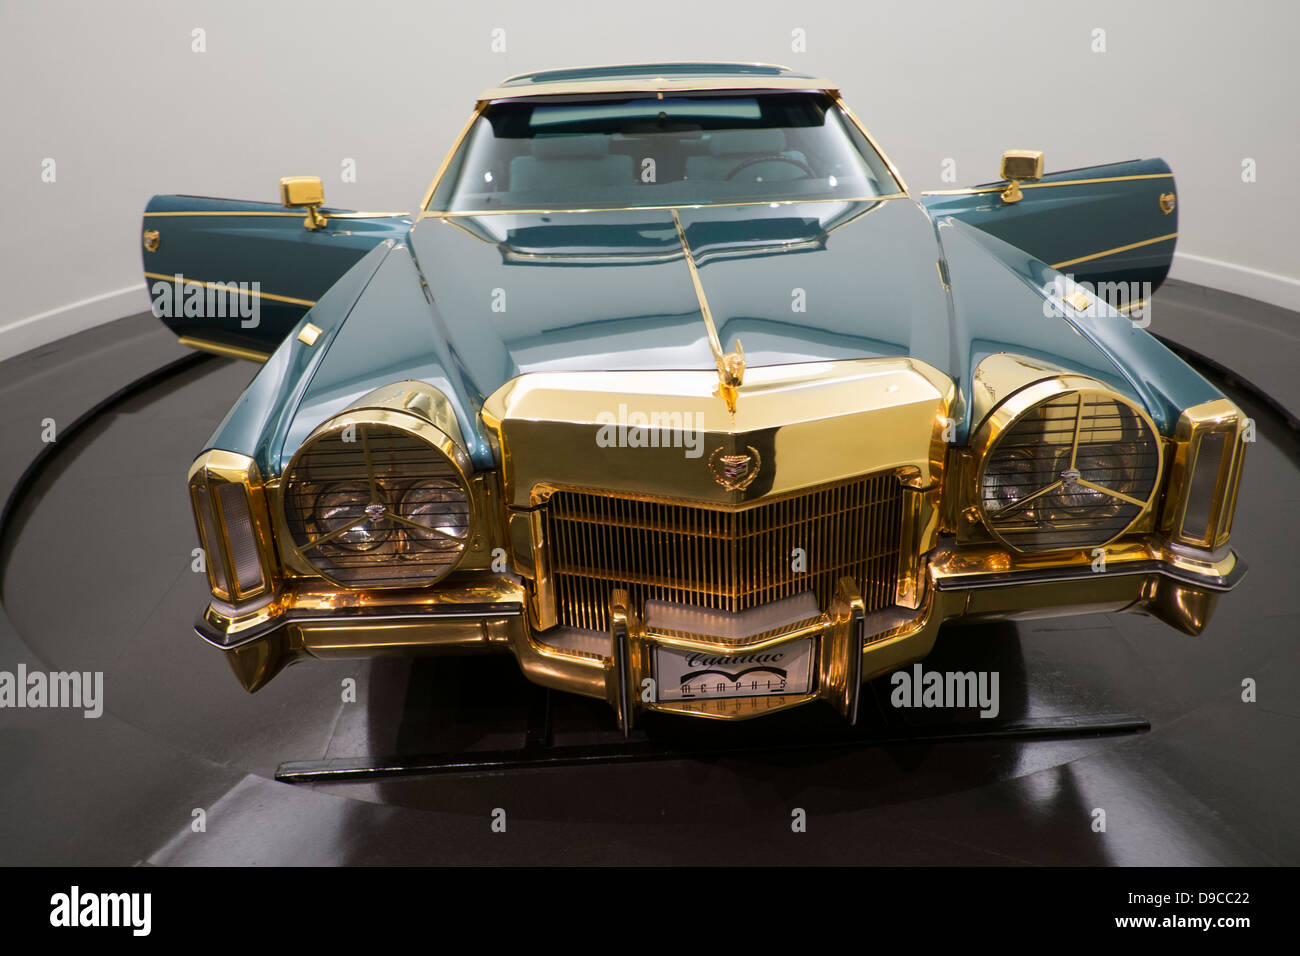 Isaac Hayes 1972 Cadillac El Darado at the Stax records museum, Memphis, Tennessee. - Stock Image